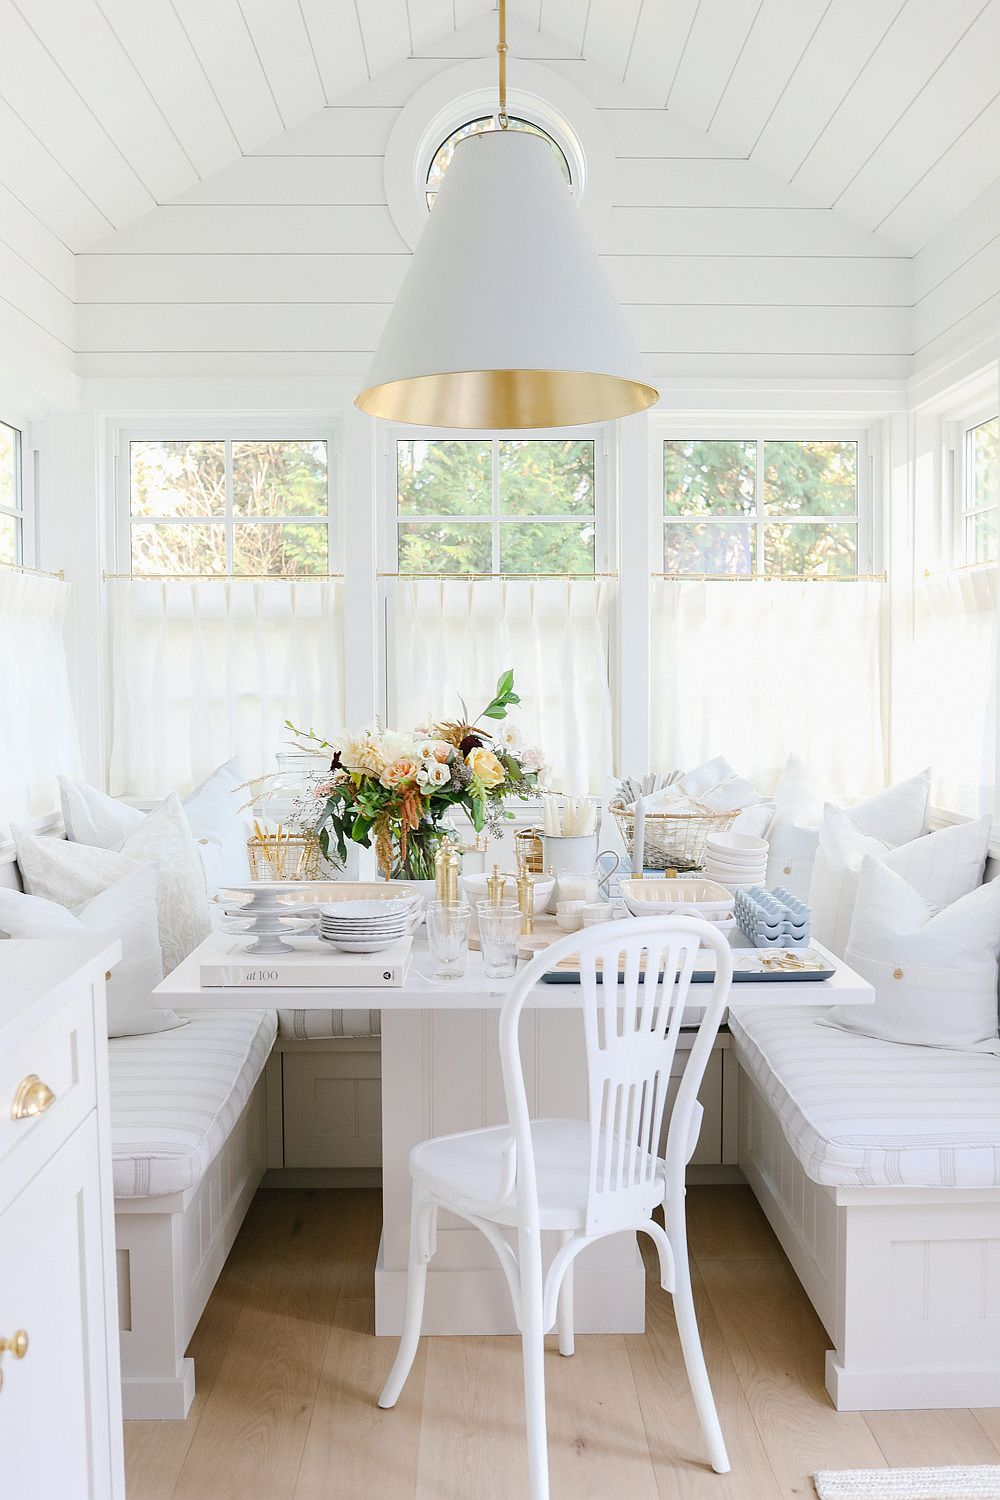 Banquette-style-seating-for-the-shabby-chic-dining-space-that-is-space-savvy-19696